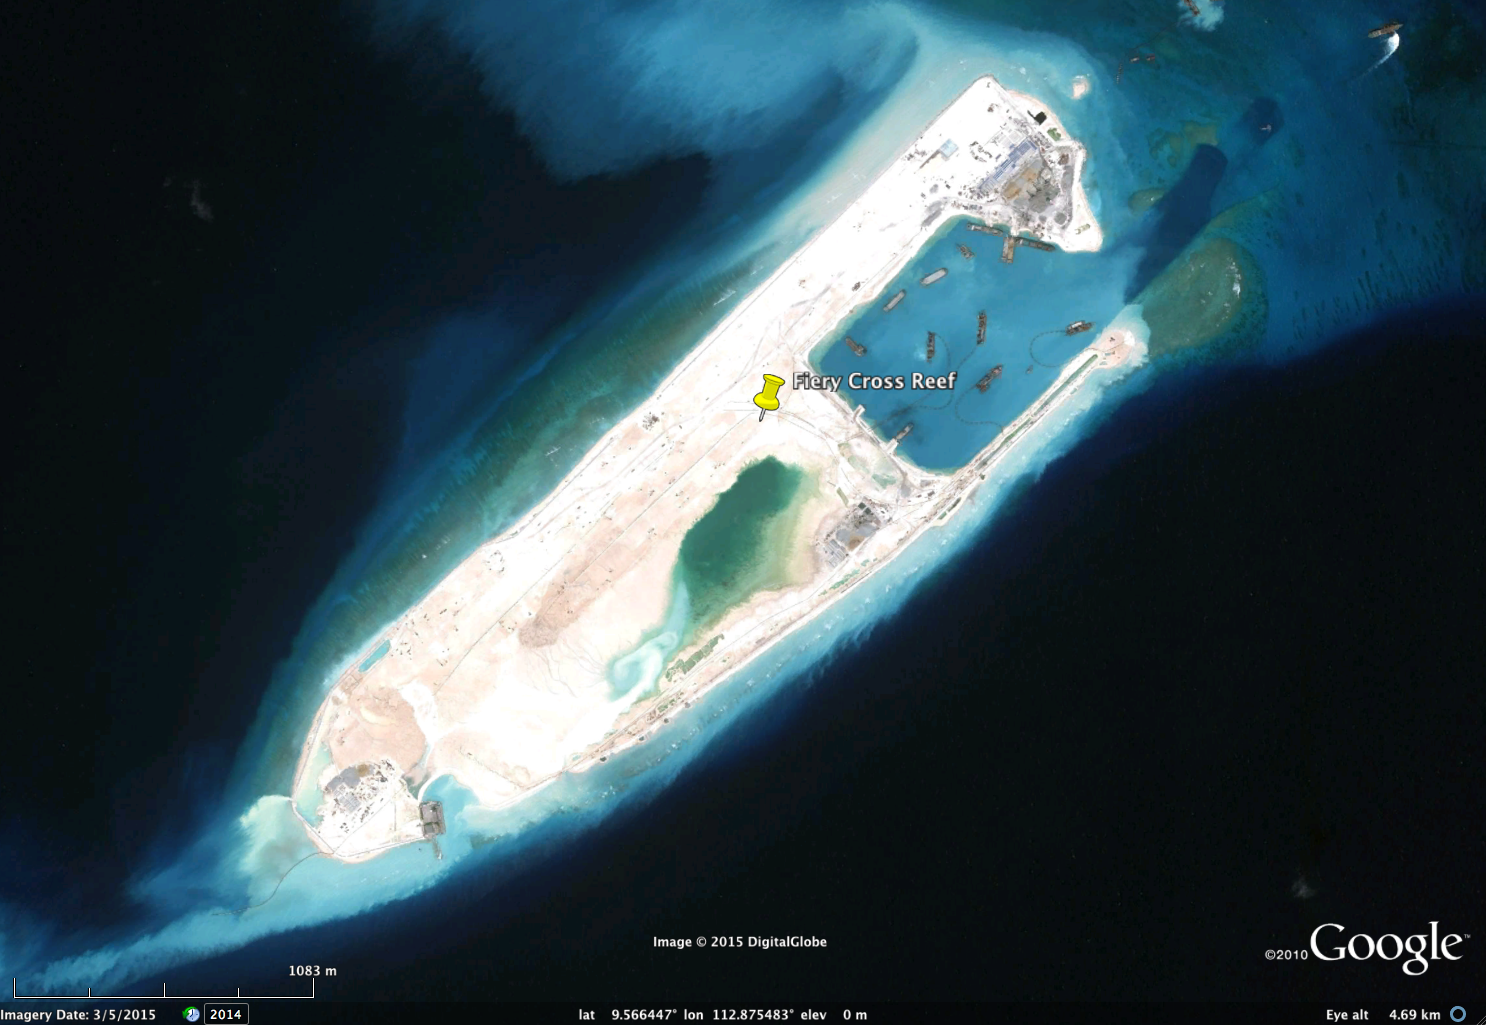 FieryCrossReef, March 5, 2015. Mostof the previous coral reef is now buried in sediment, creating a new 'island'. Image copyright DigitalGlobe, via Google.